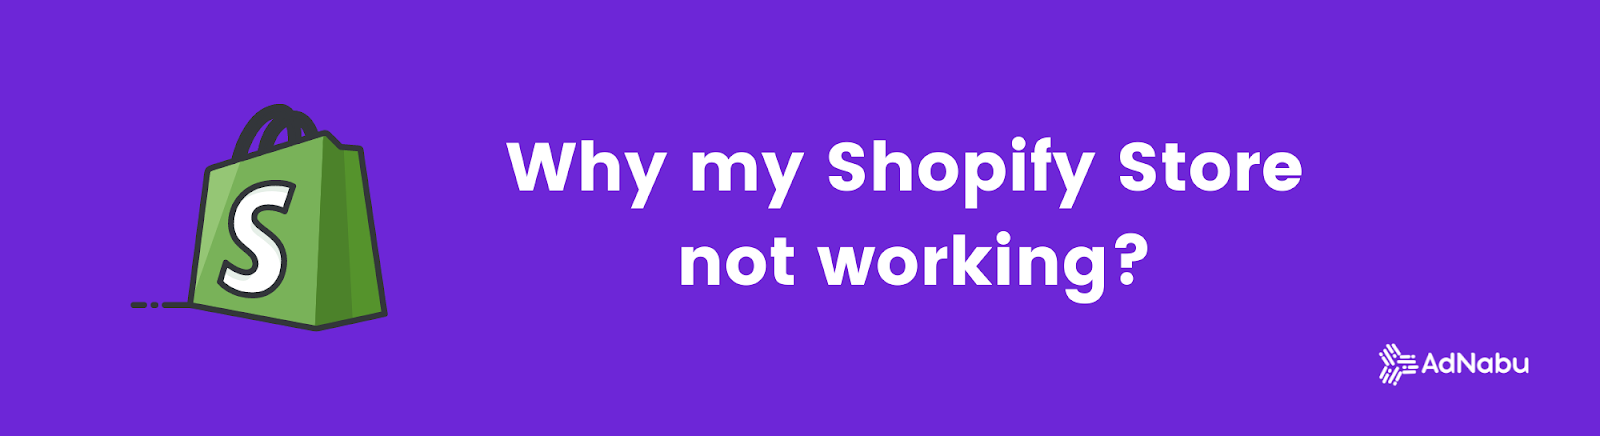 Why is My Shopify Store not Working